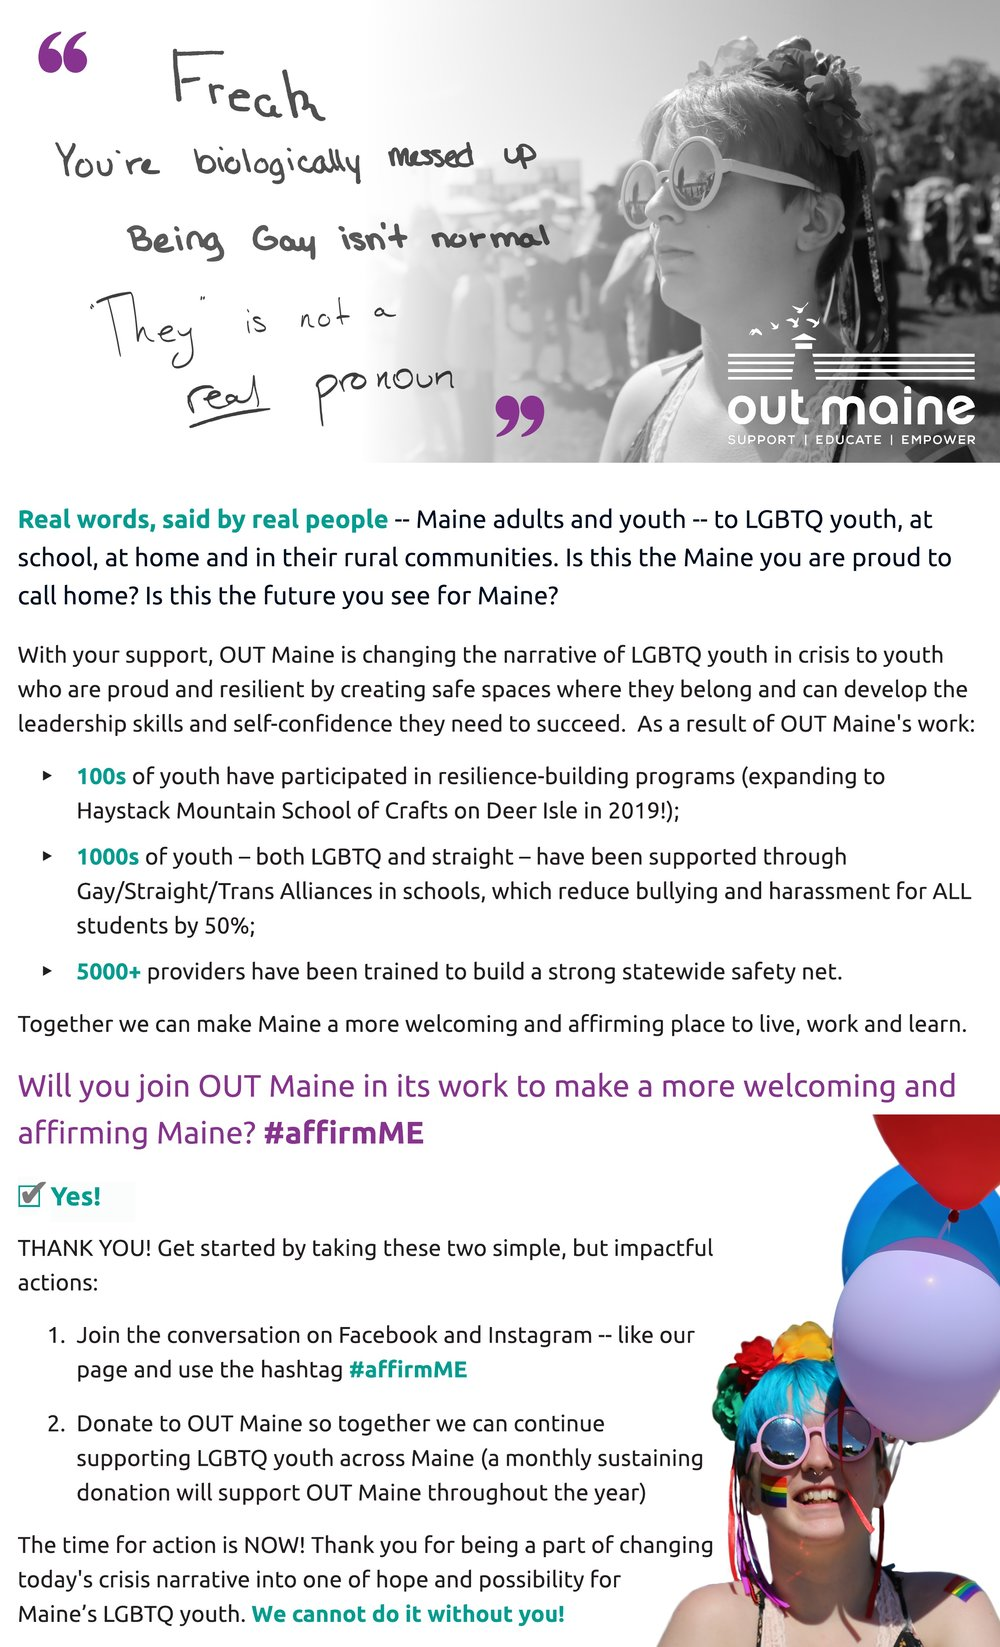 Out Maine Appeal - Final 2018 - larger MC.jpeg